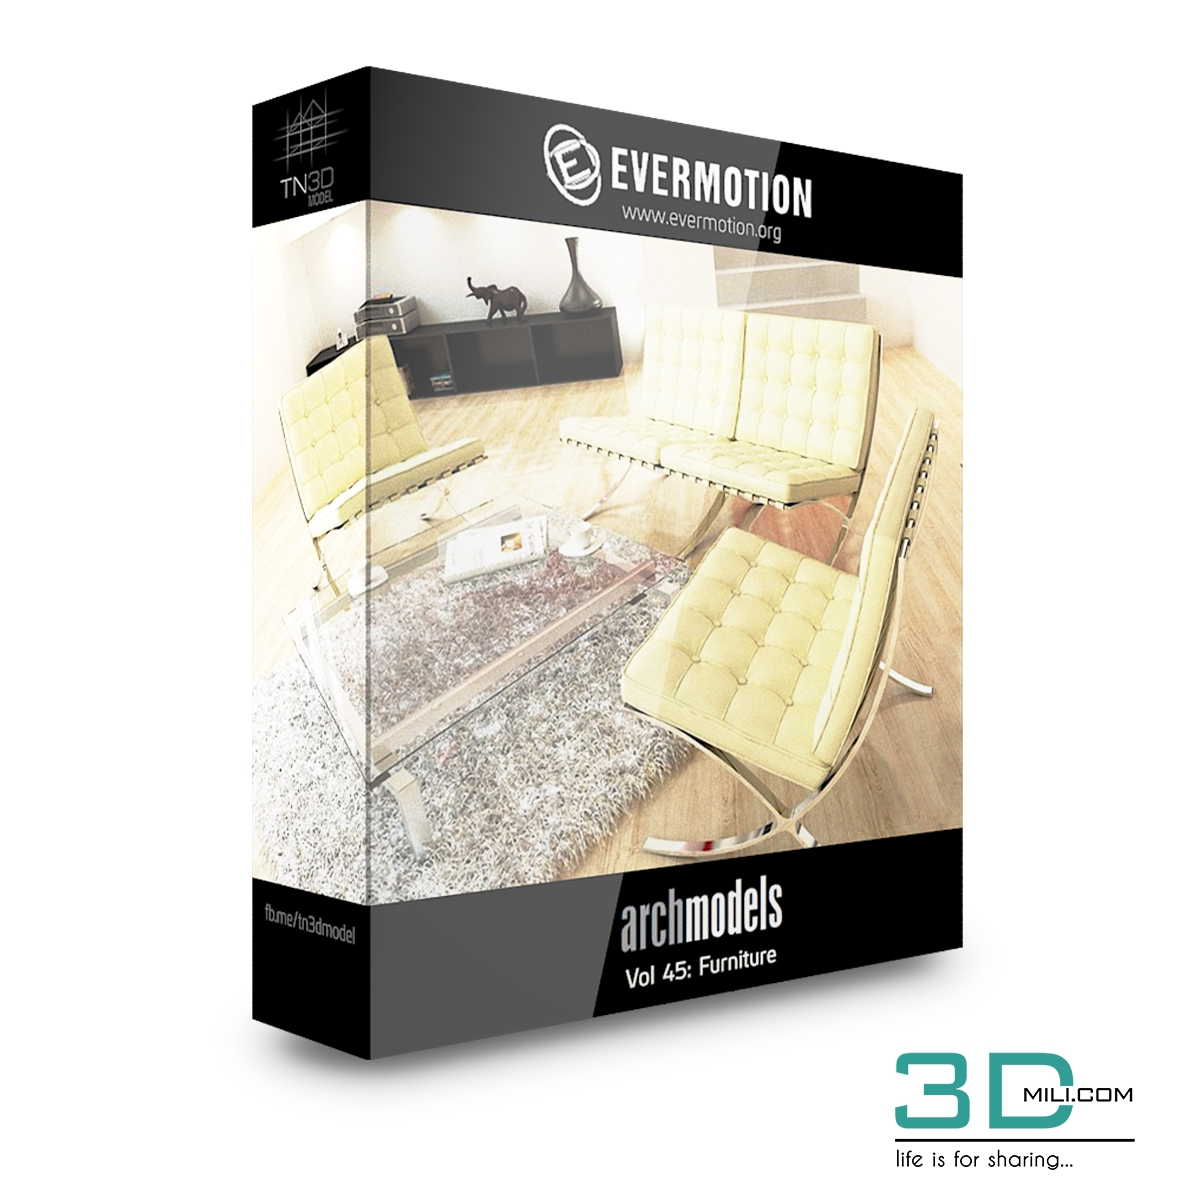 Evermotion Archmodels Vol 45: Furniture - 3D Mili - Download 3D